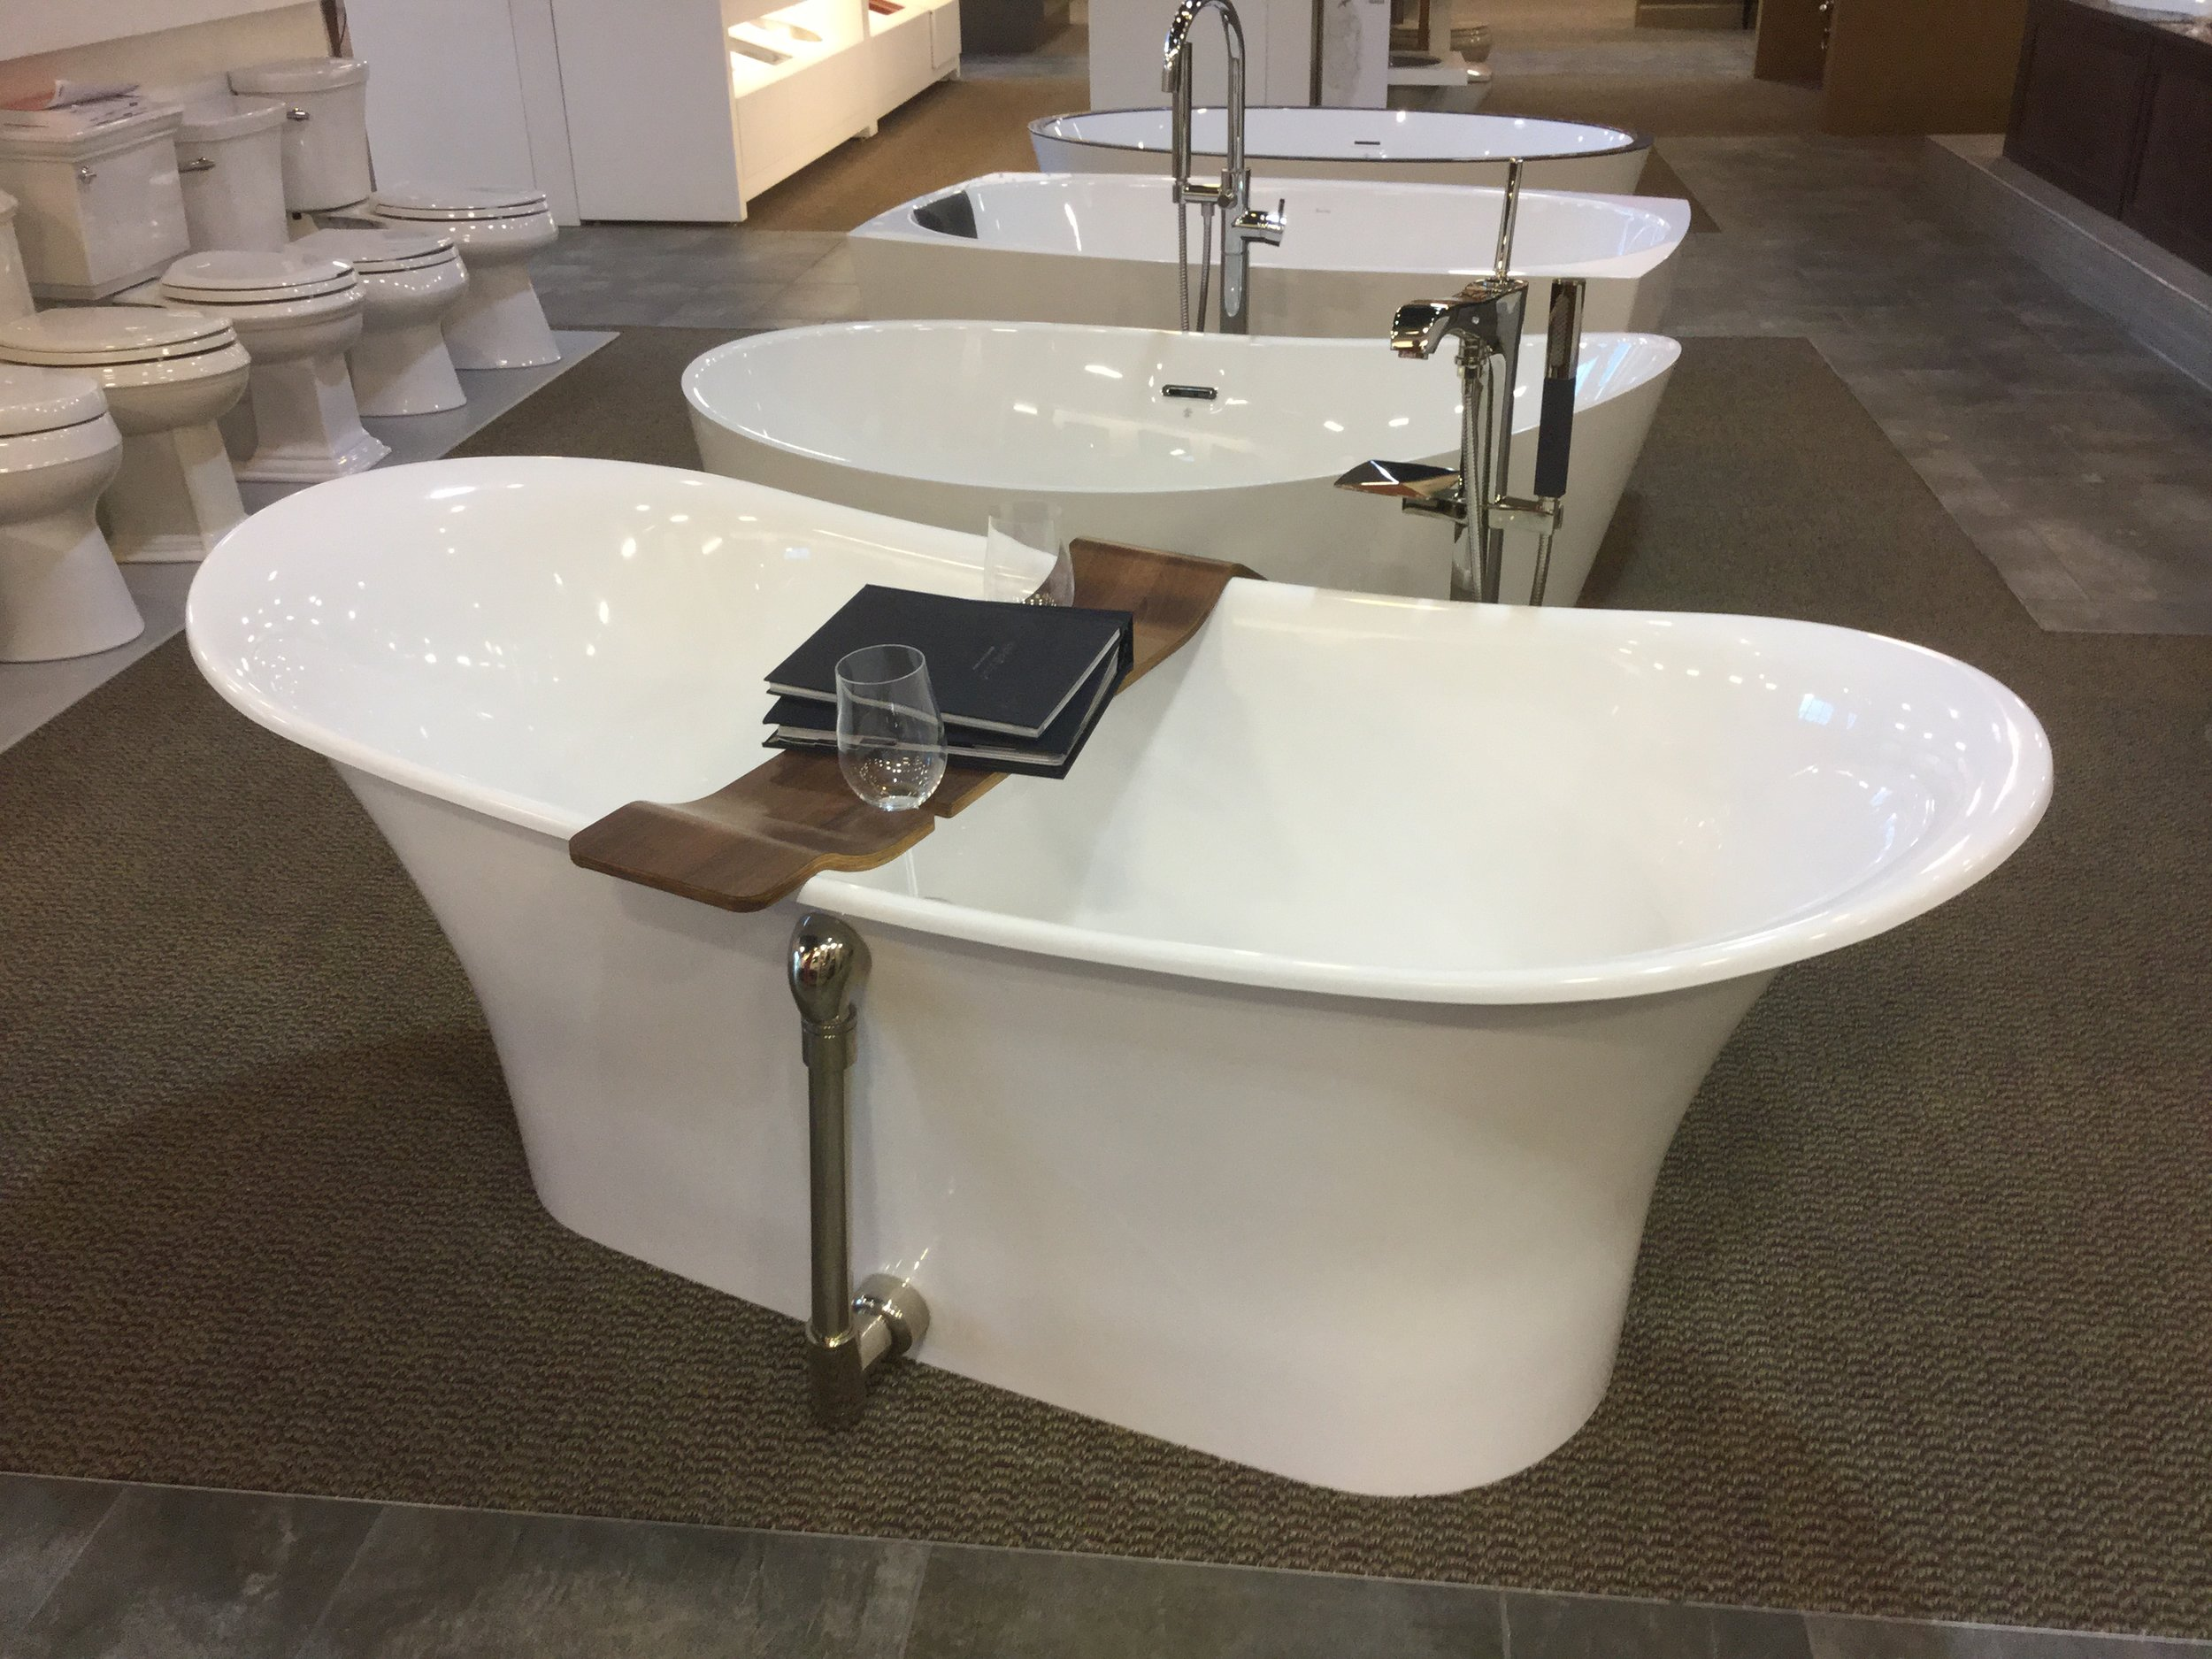 Kitchens and Baths by Briggs not only has top-notch customer service, but you can actually sit in these beauties.